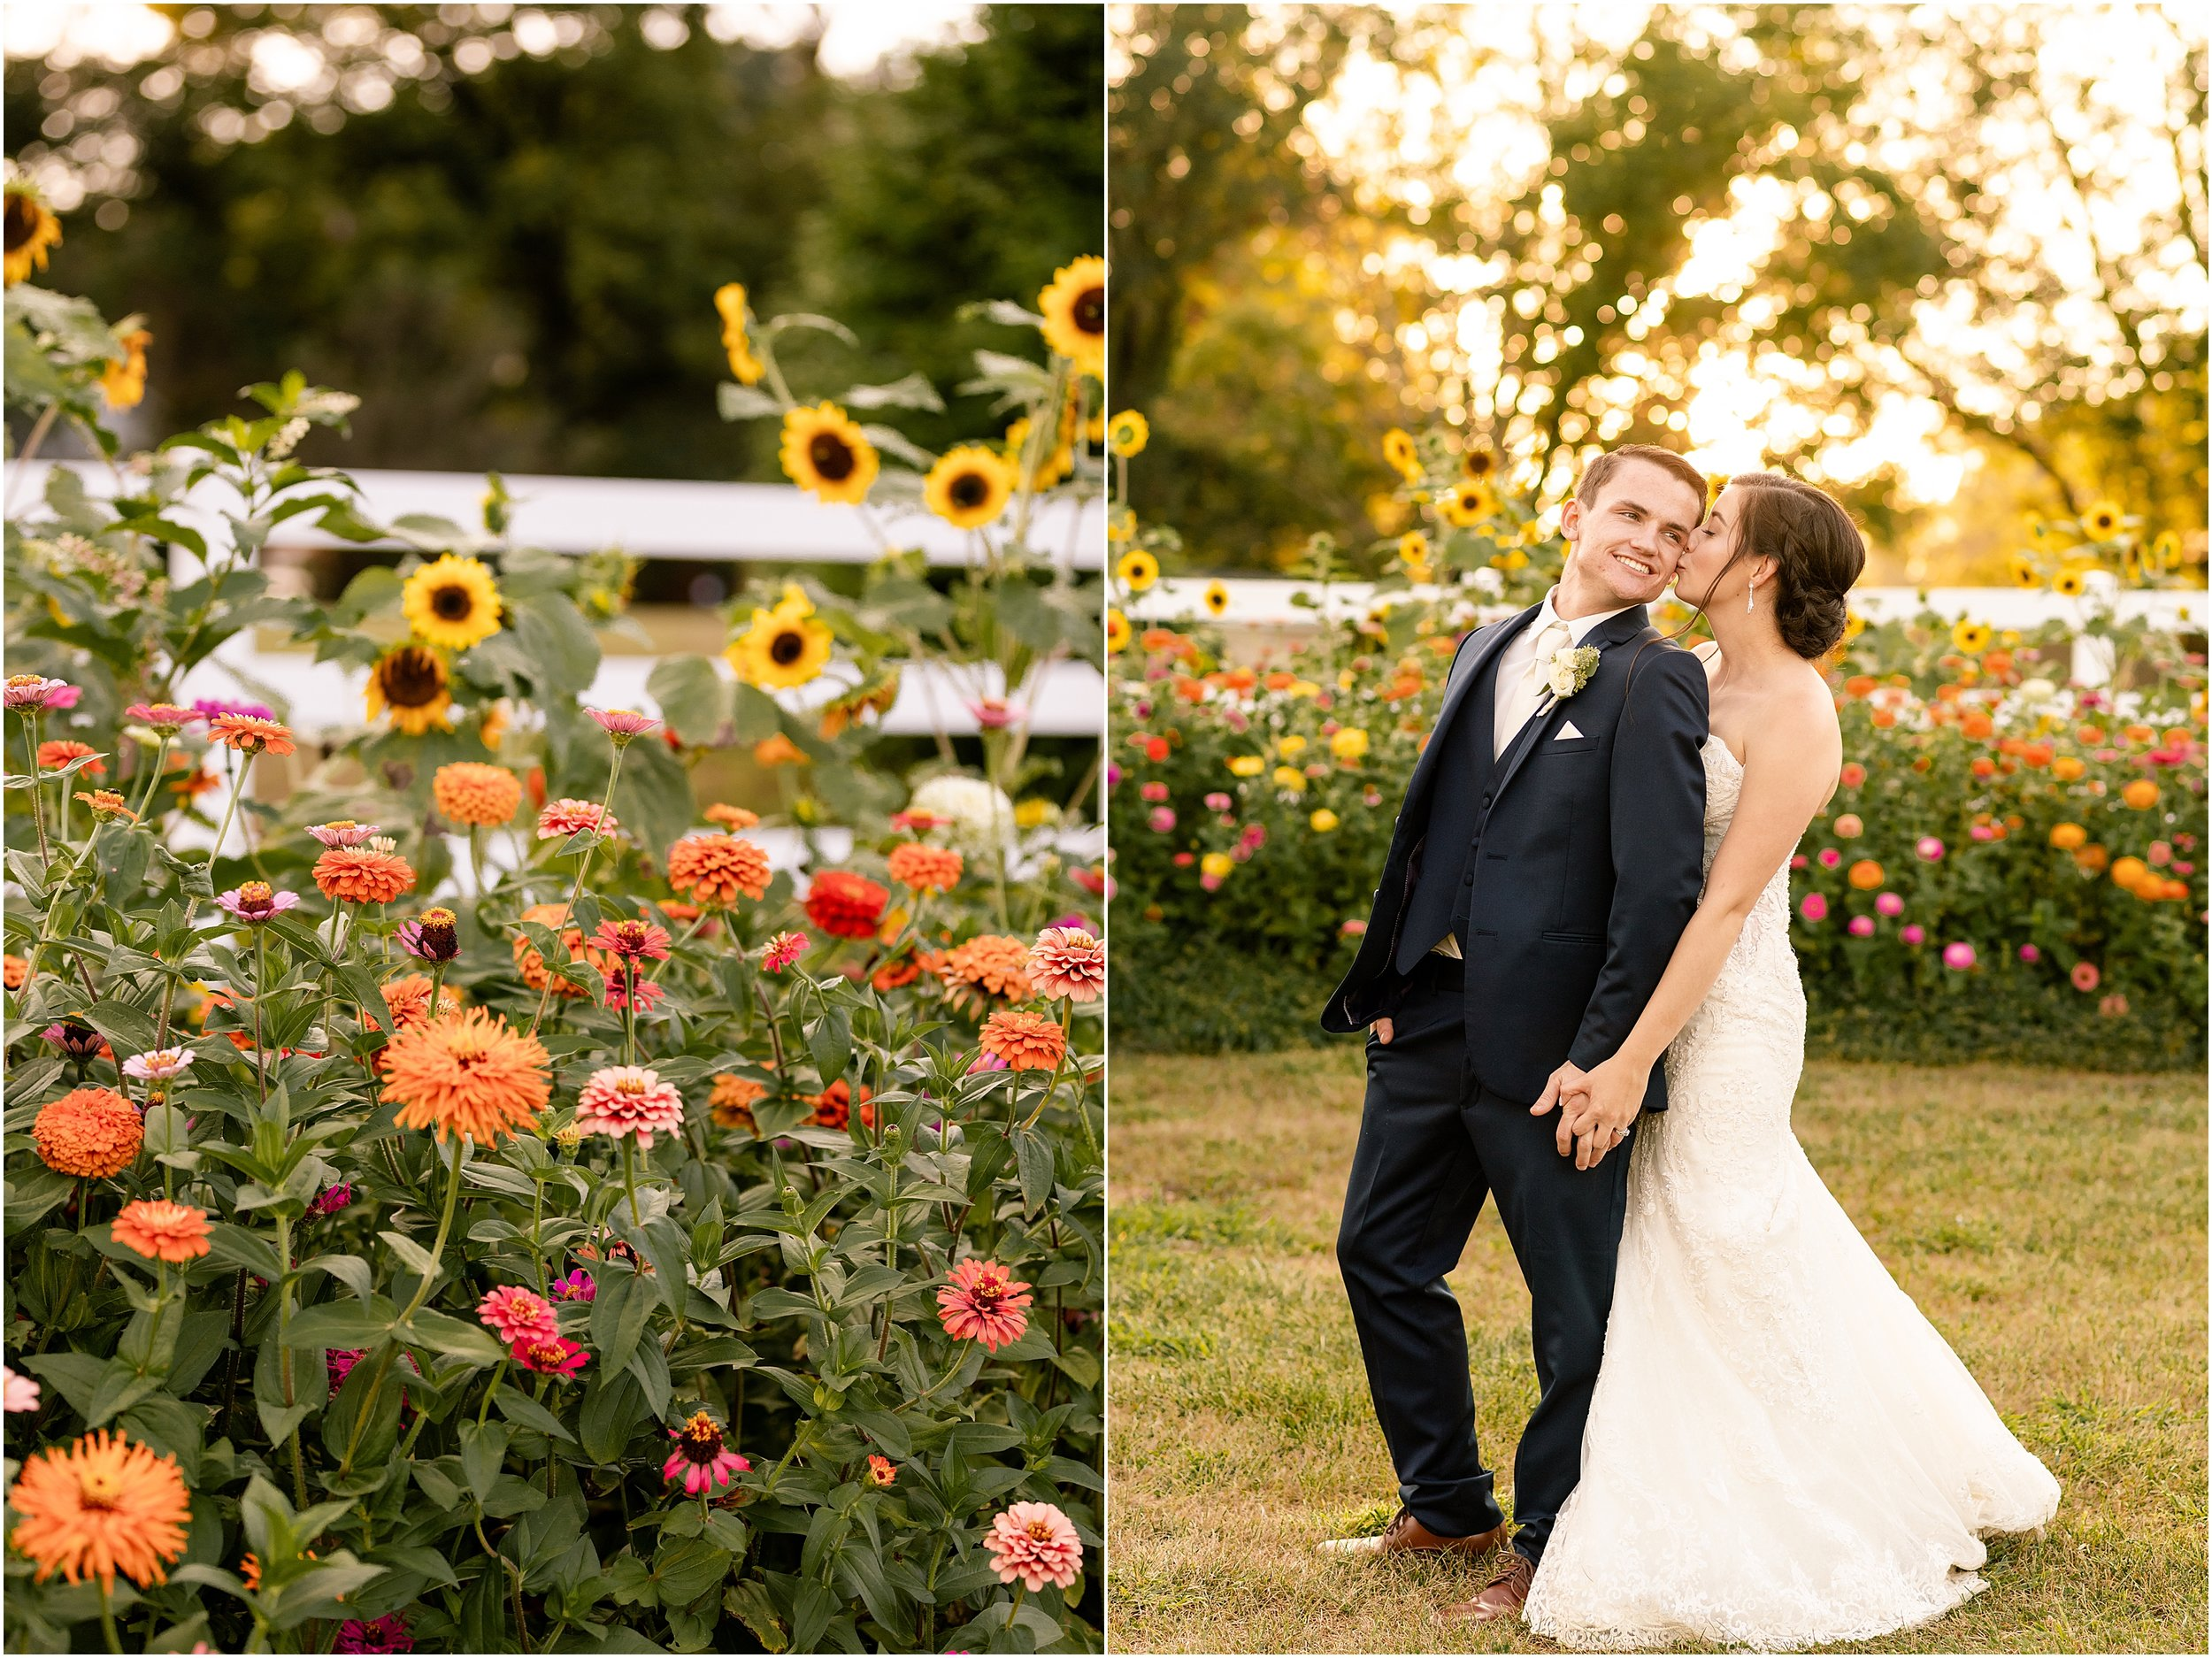 hannah leigh photography Pond View Farm Wedding White Hall MD_3672.jpg